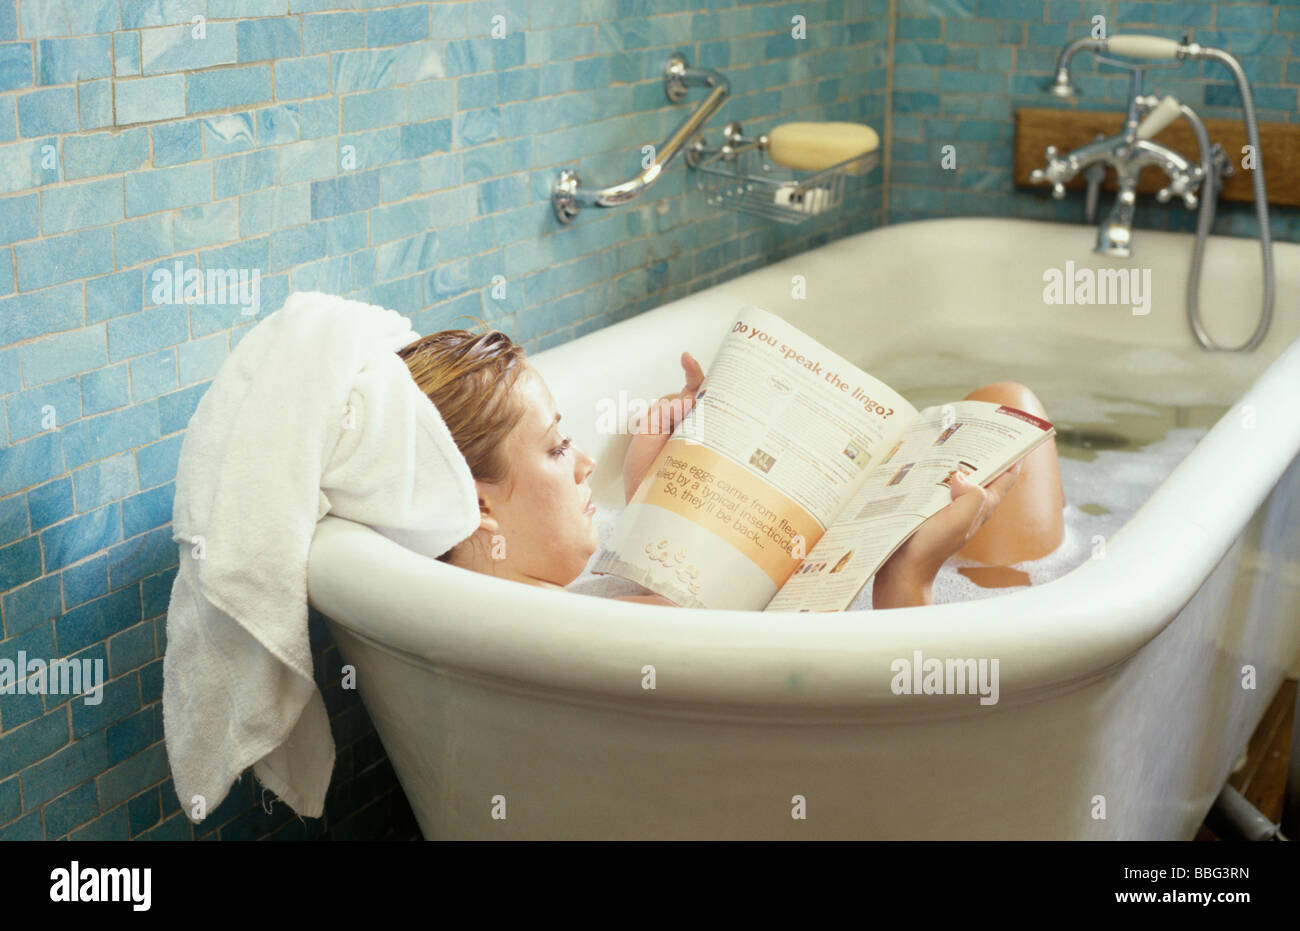 woman reading a magazine in the bath